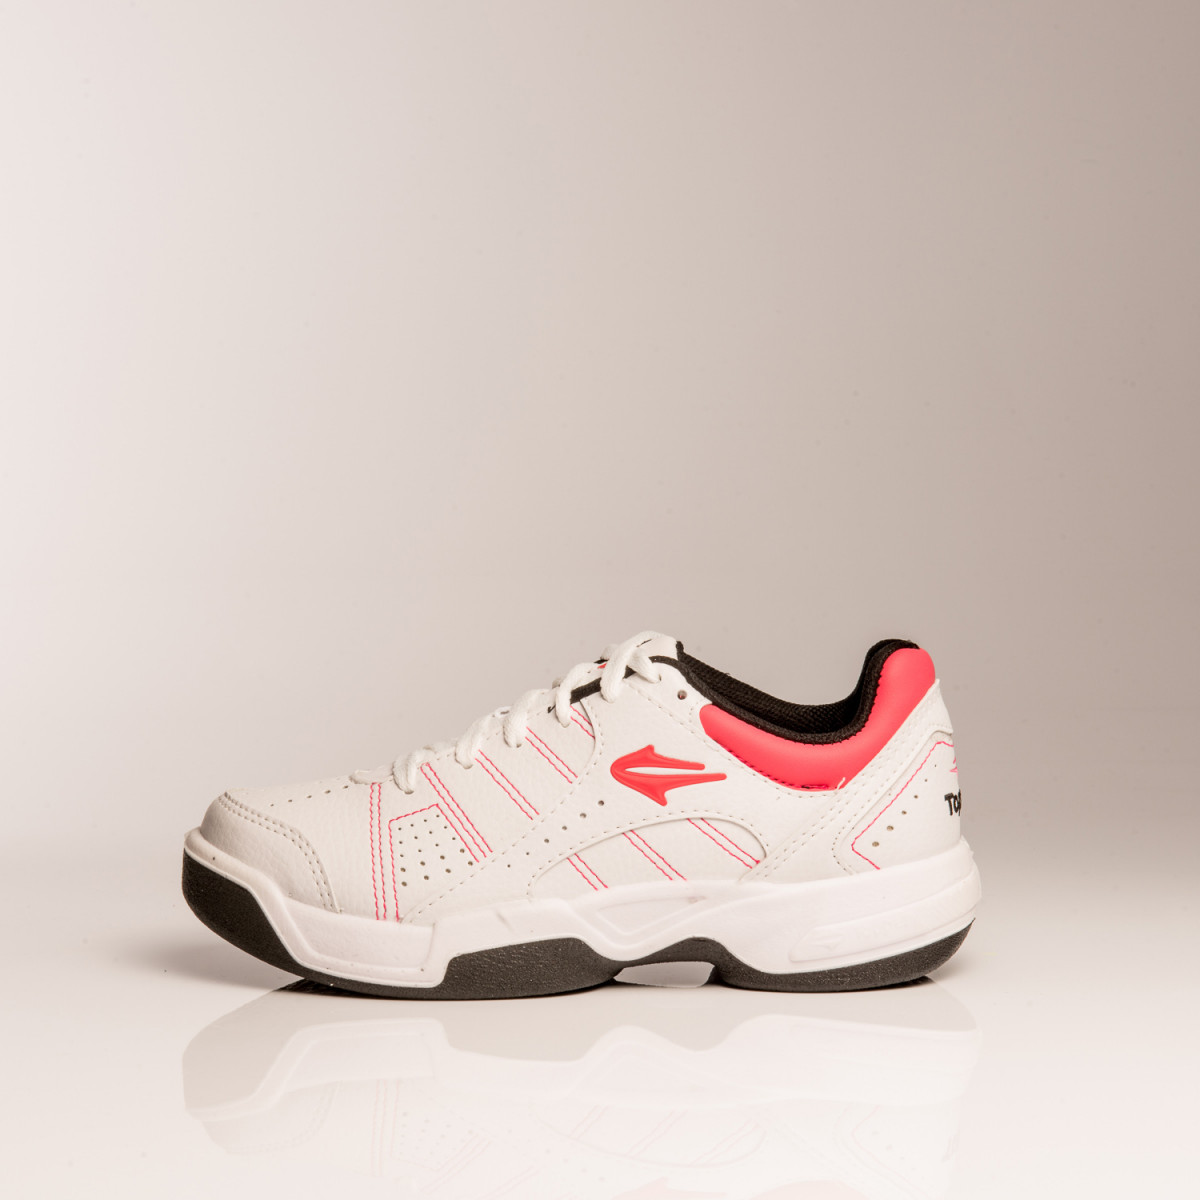 Zapatillas Topper Lady Sitter